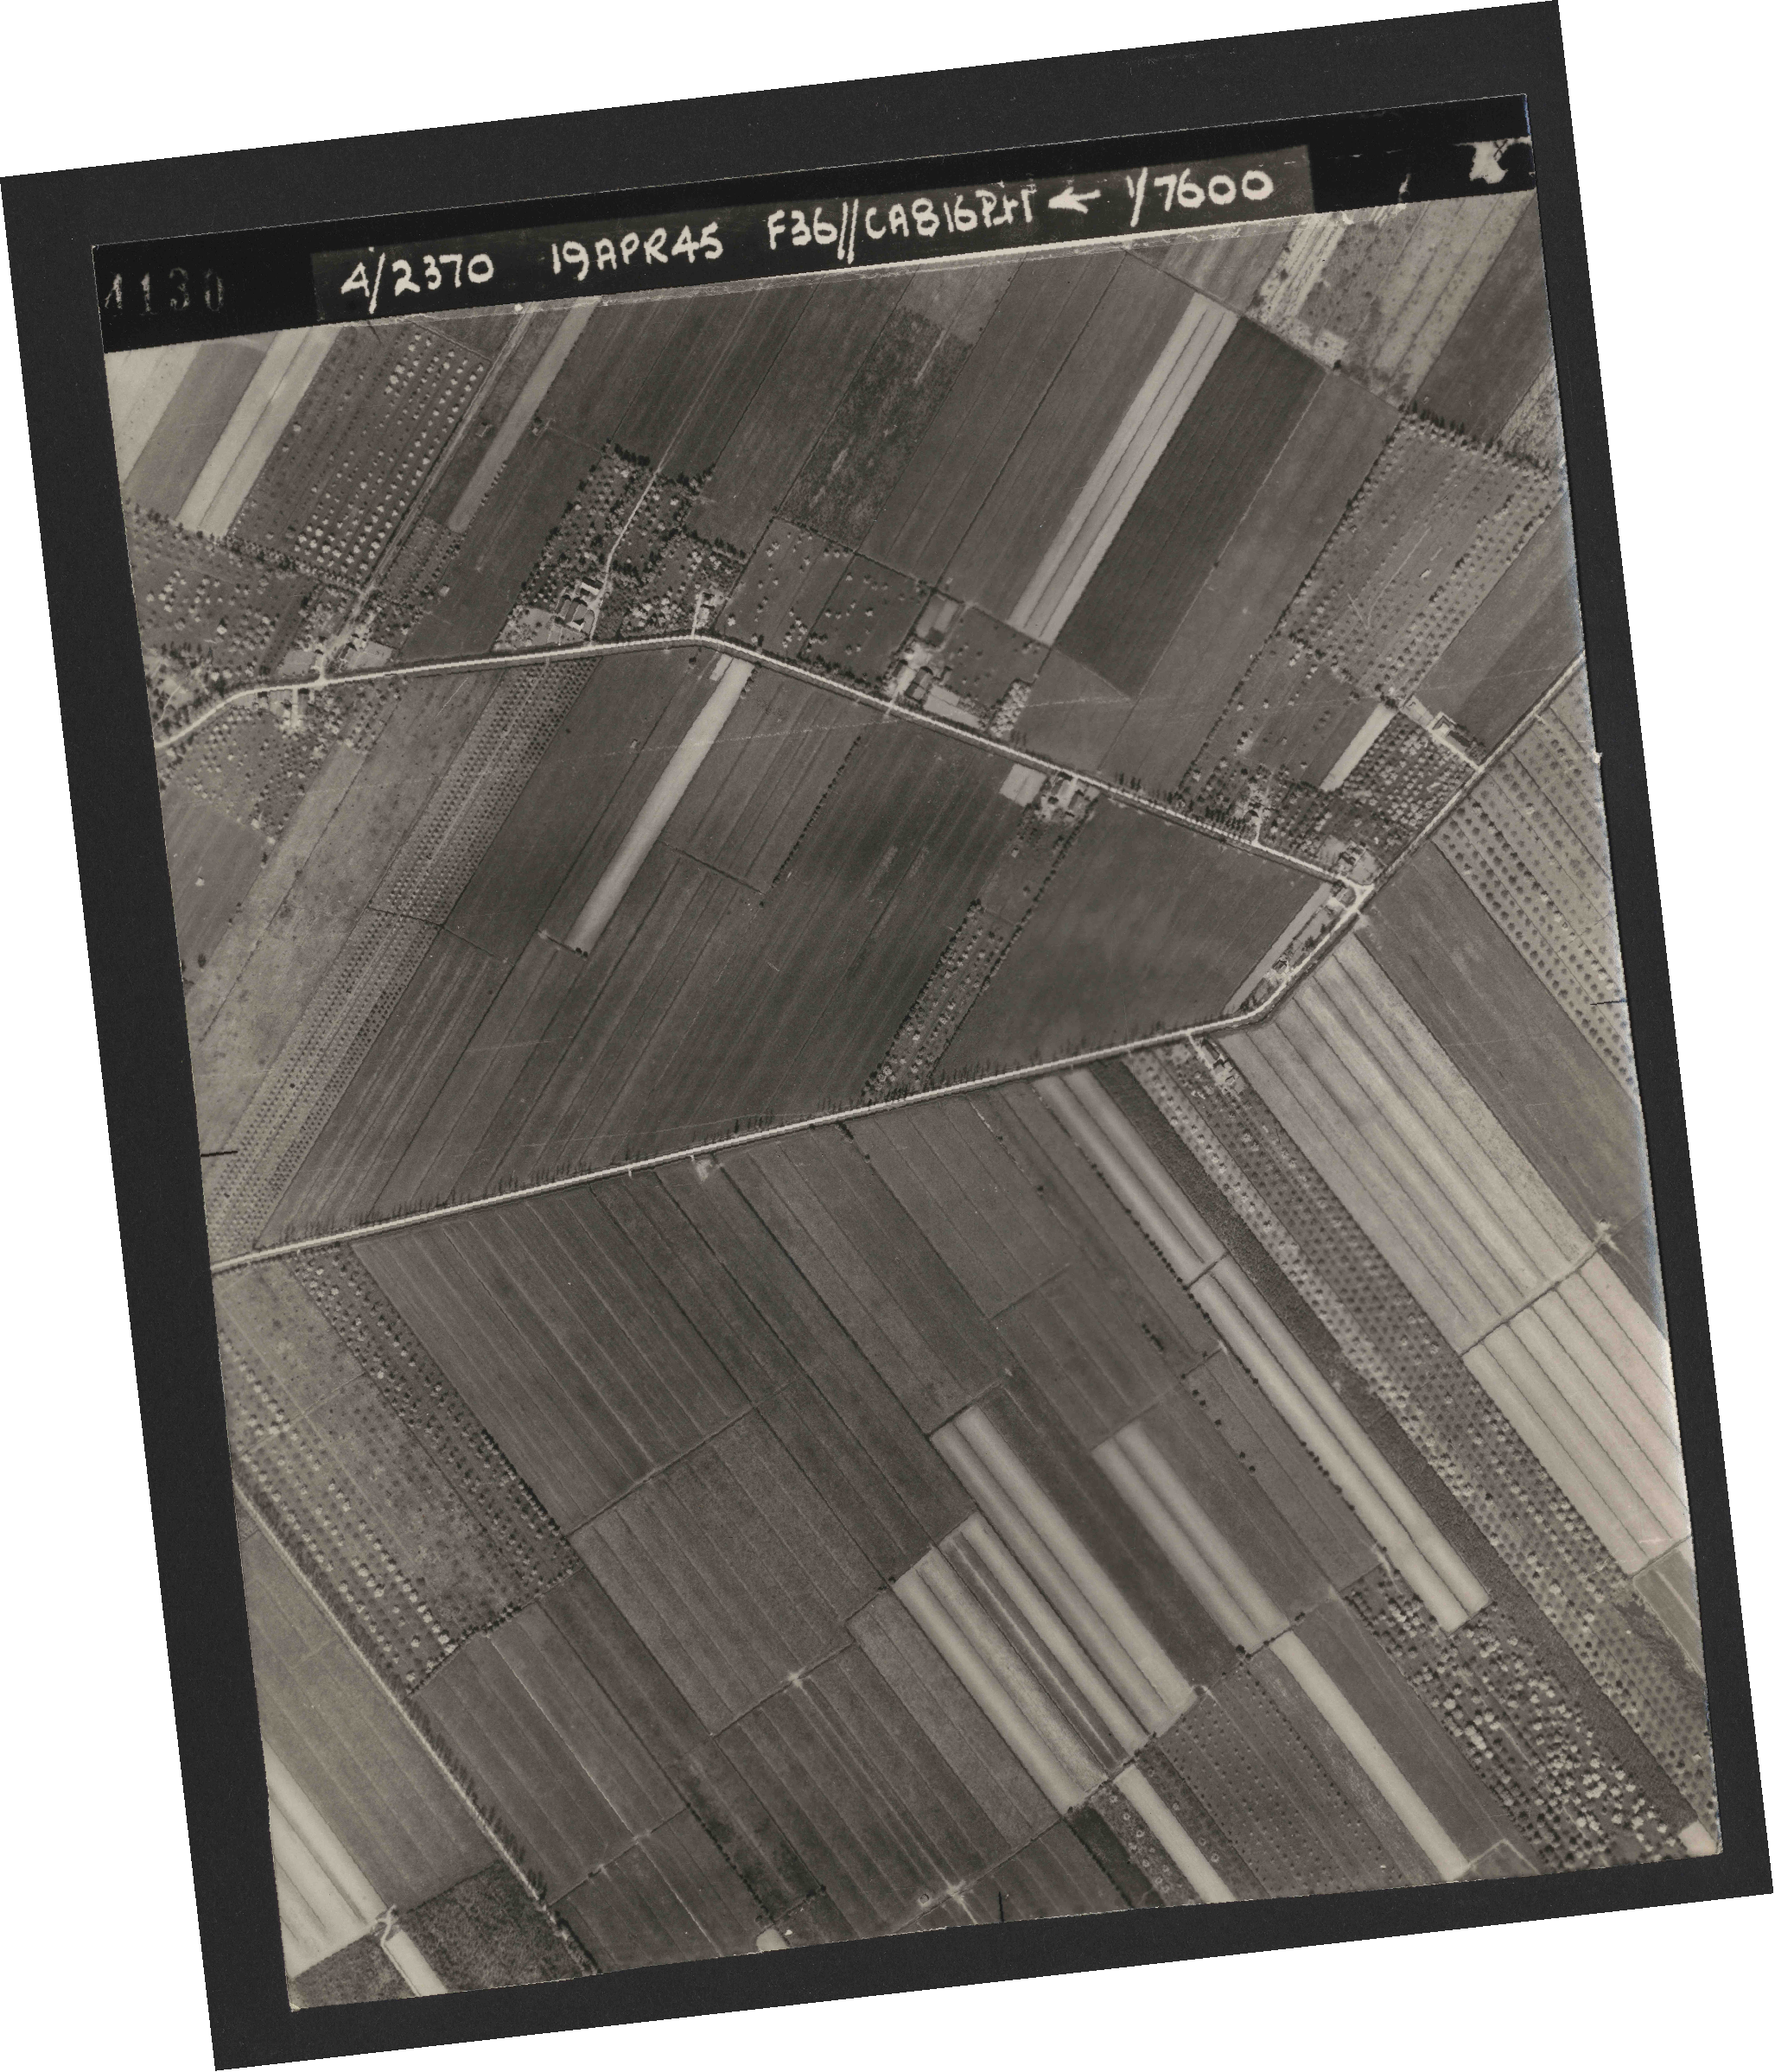 Collection RAF aerial photos 1940-1945 - flight 109, run 01, photo 4130